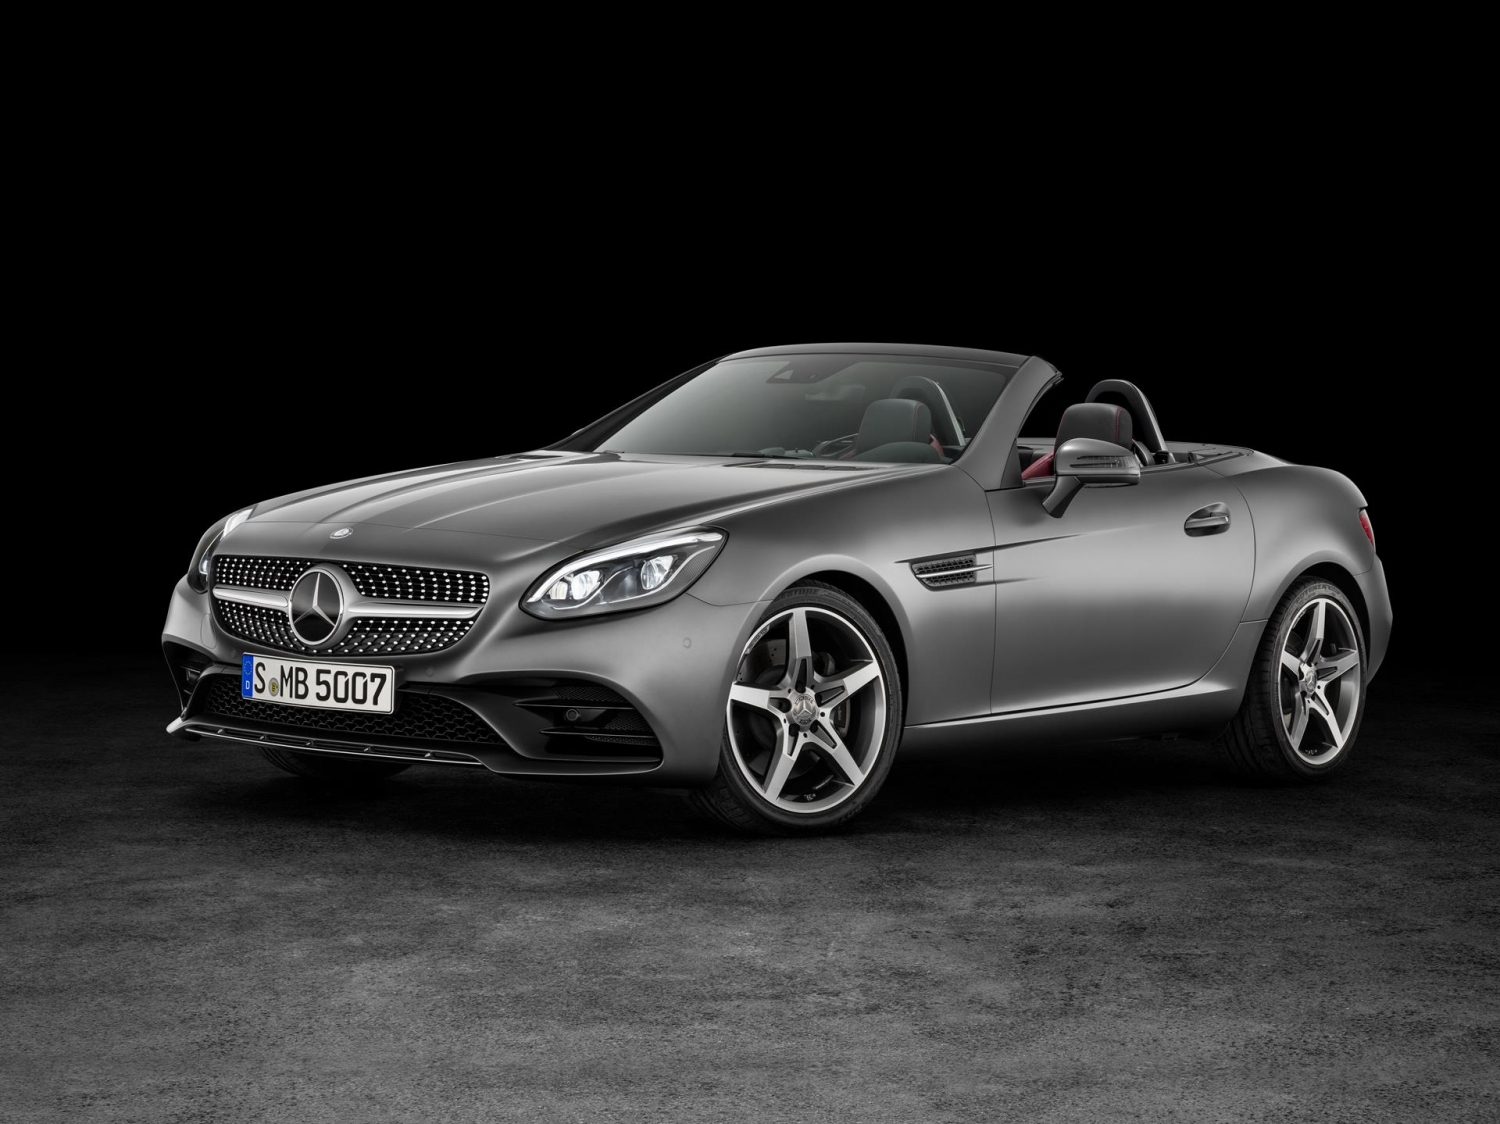 2017 Mercedes-Benz SLC Wallpapers [HD] - DriveSpark